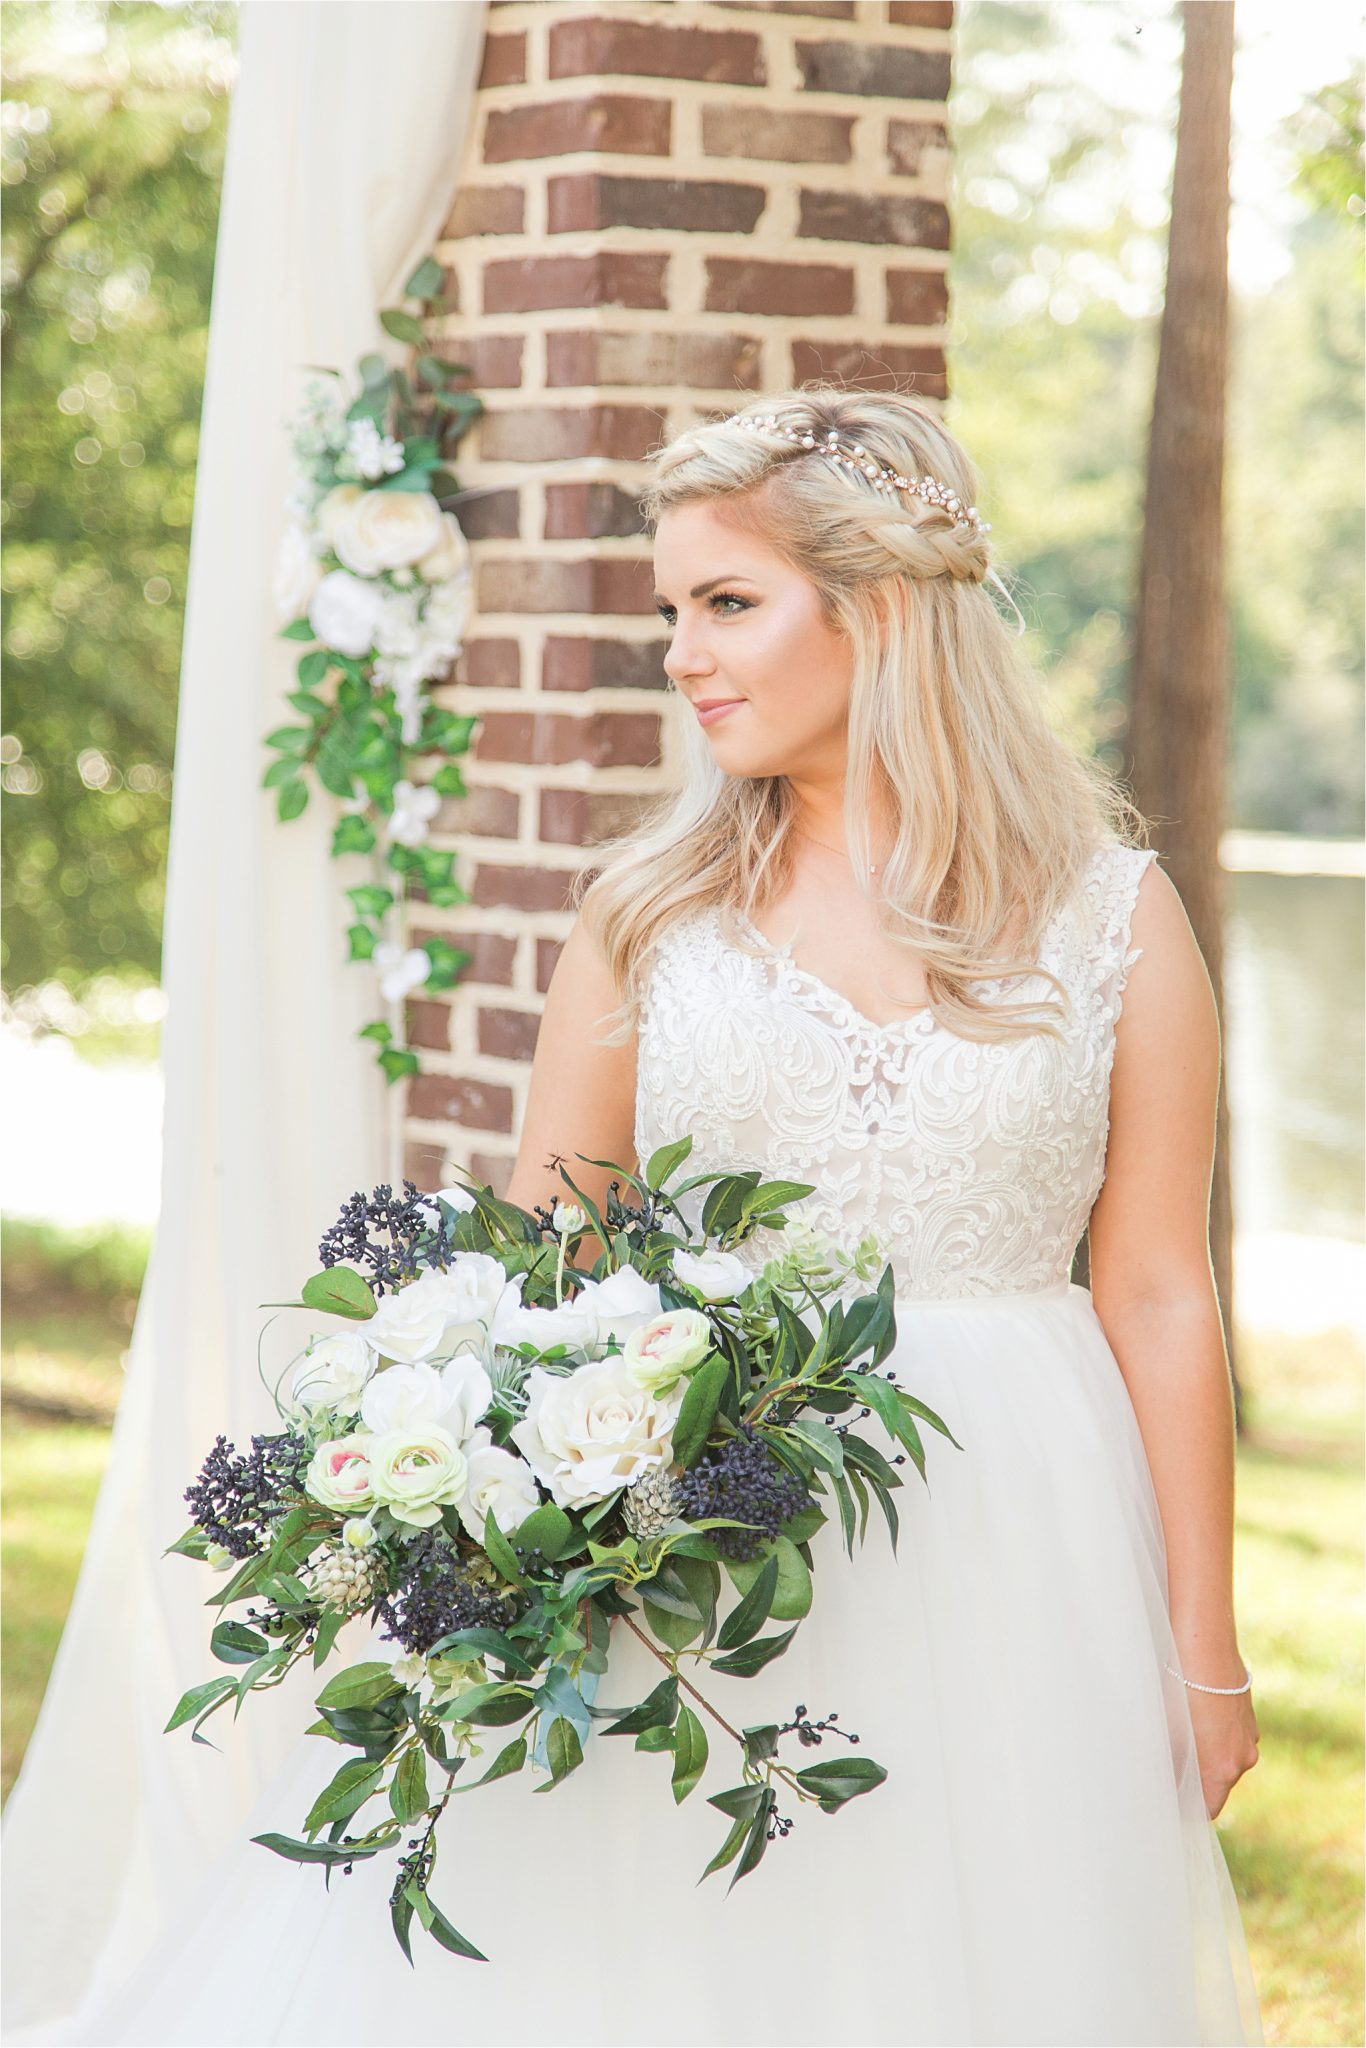 bridal-photos-portraits-pearl-hair-crown-navy-blue-flower-bouqet